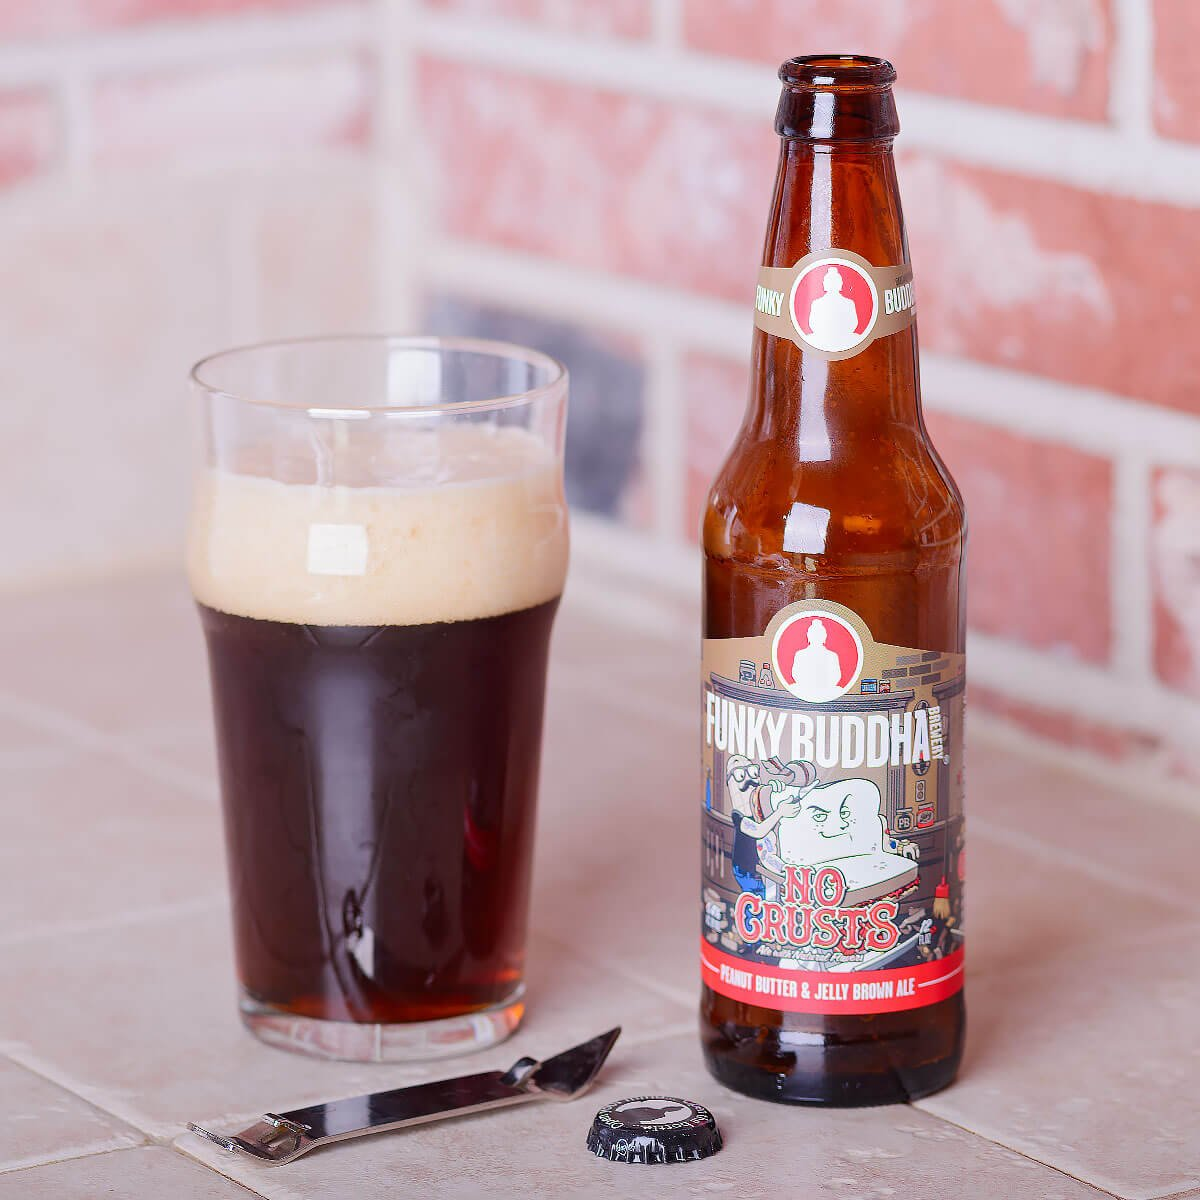 No Crusts, an American Brown Ale by Funky Buddha Brewery